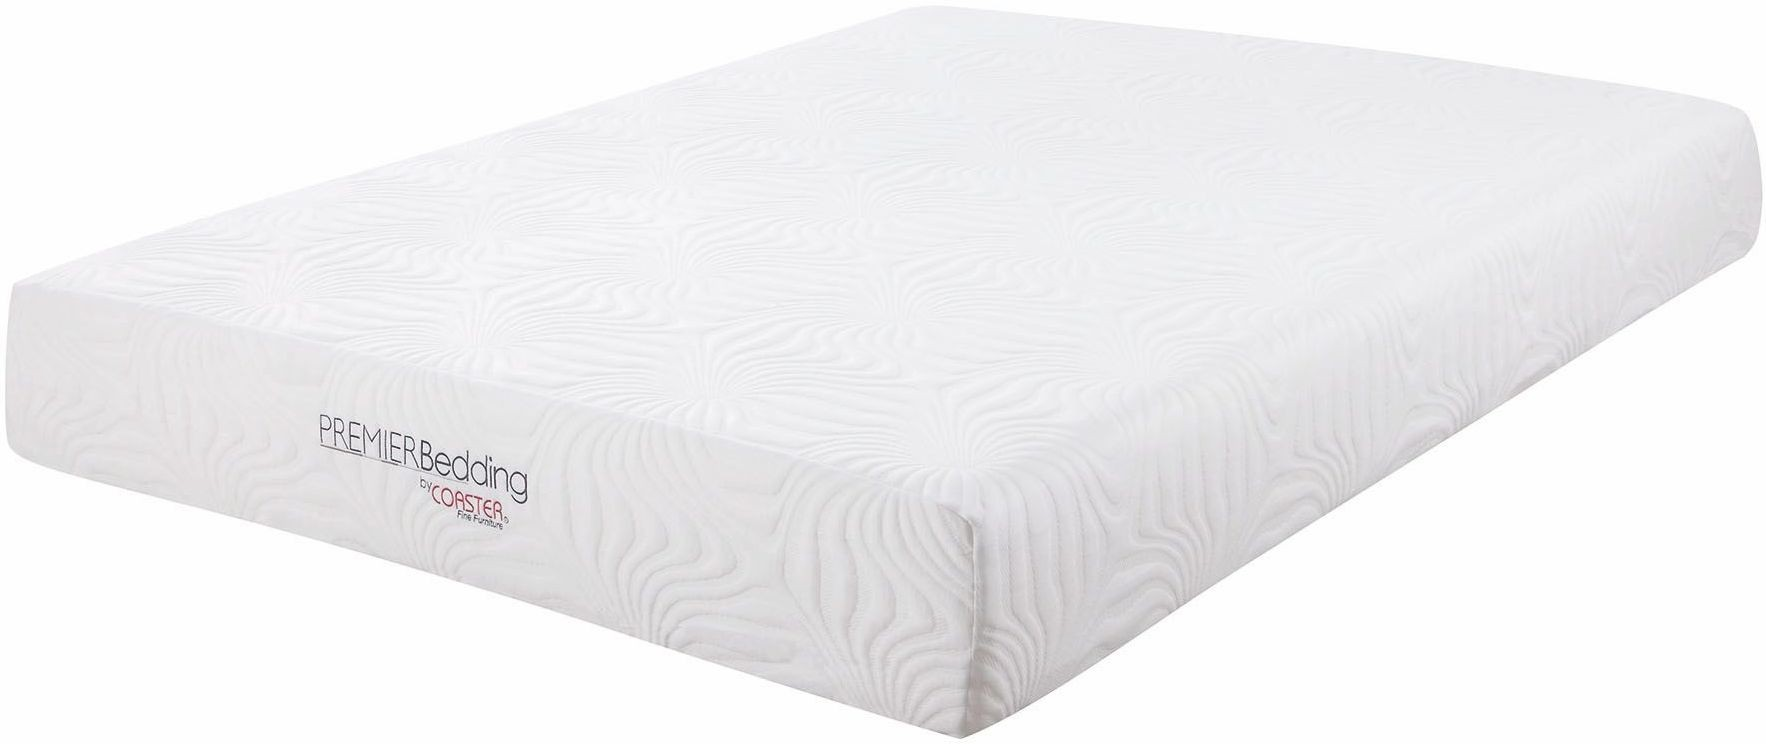 Key 10 king memory foam mattress from coaster coleman furniture Memory foam mattress king size sale